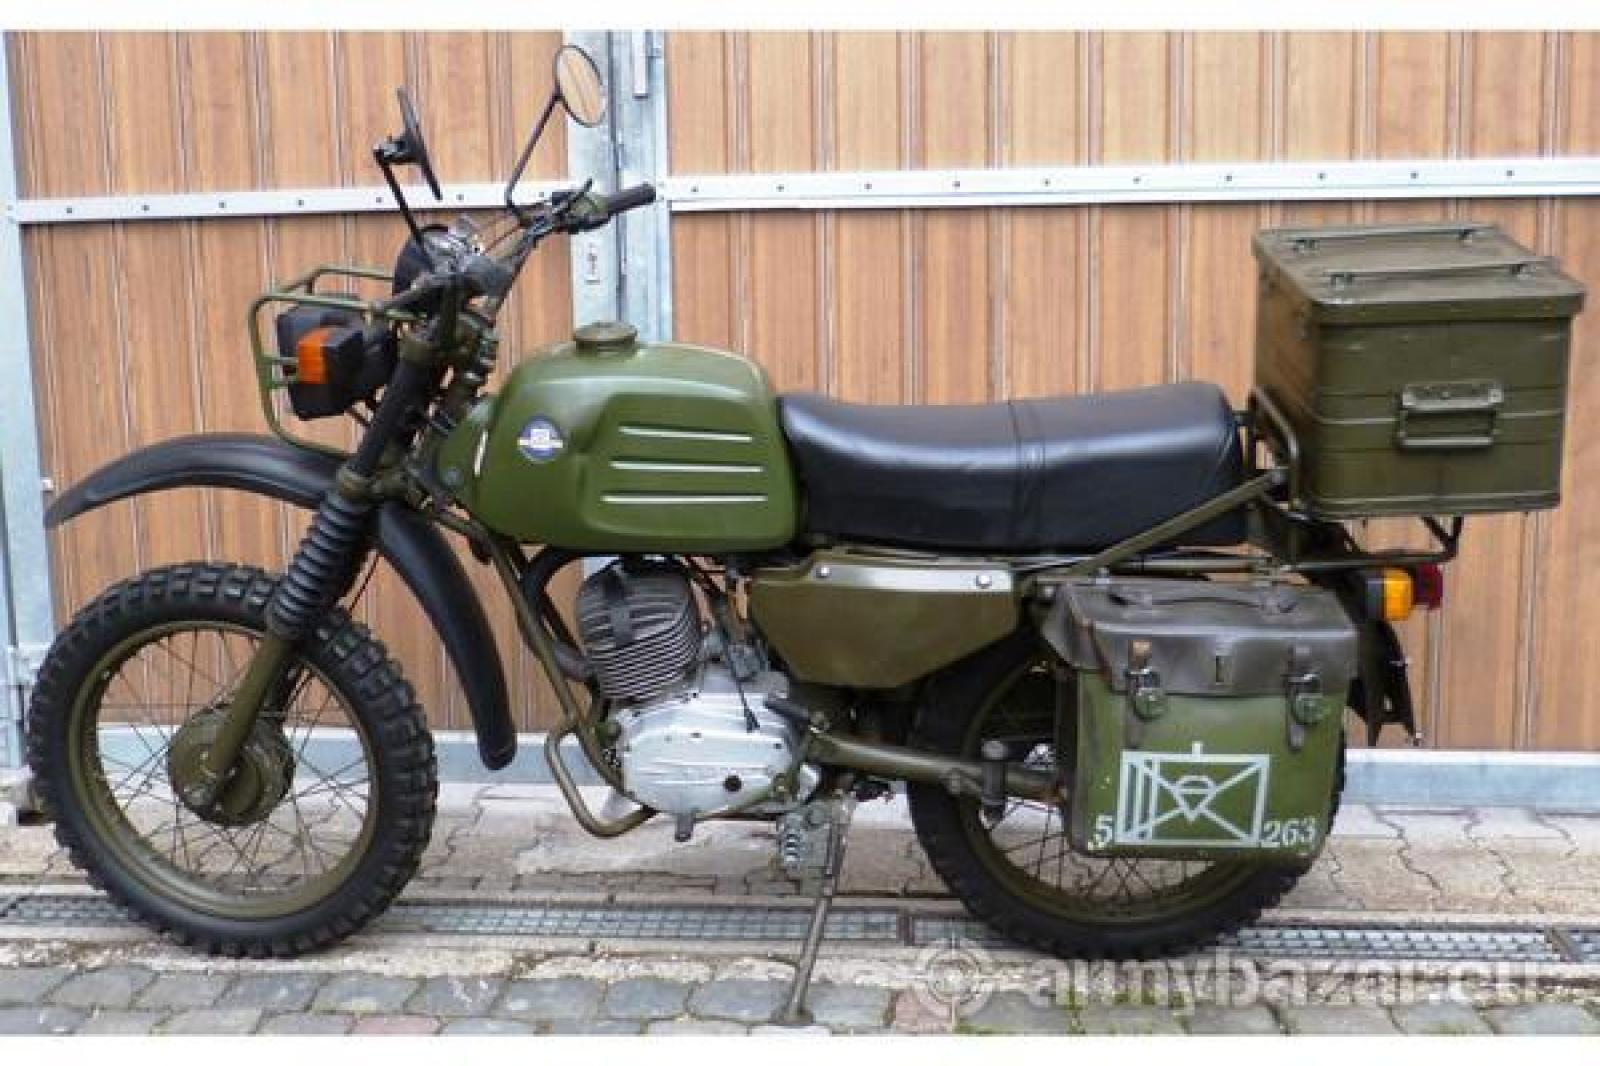 Hercules K 125 Military 1980 images #74138